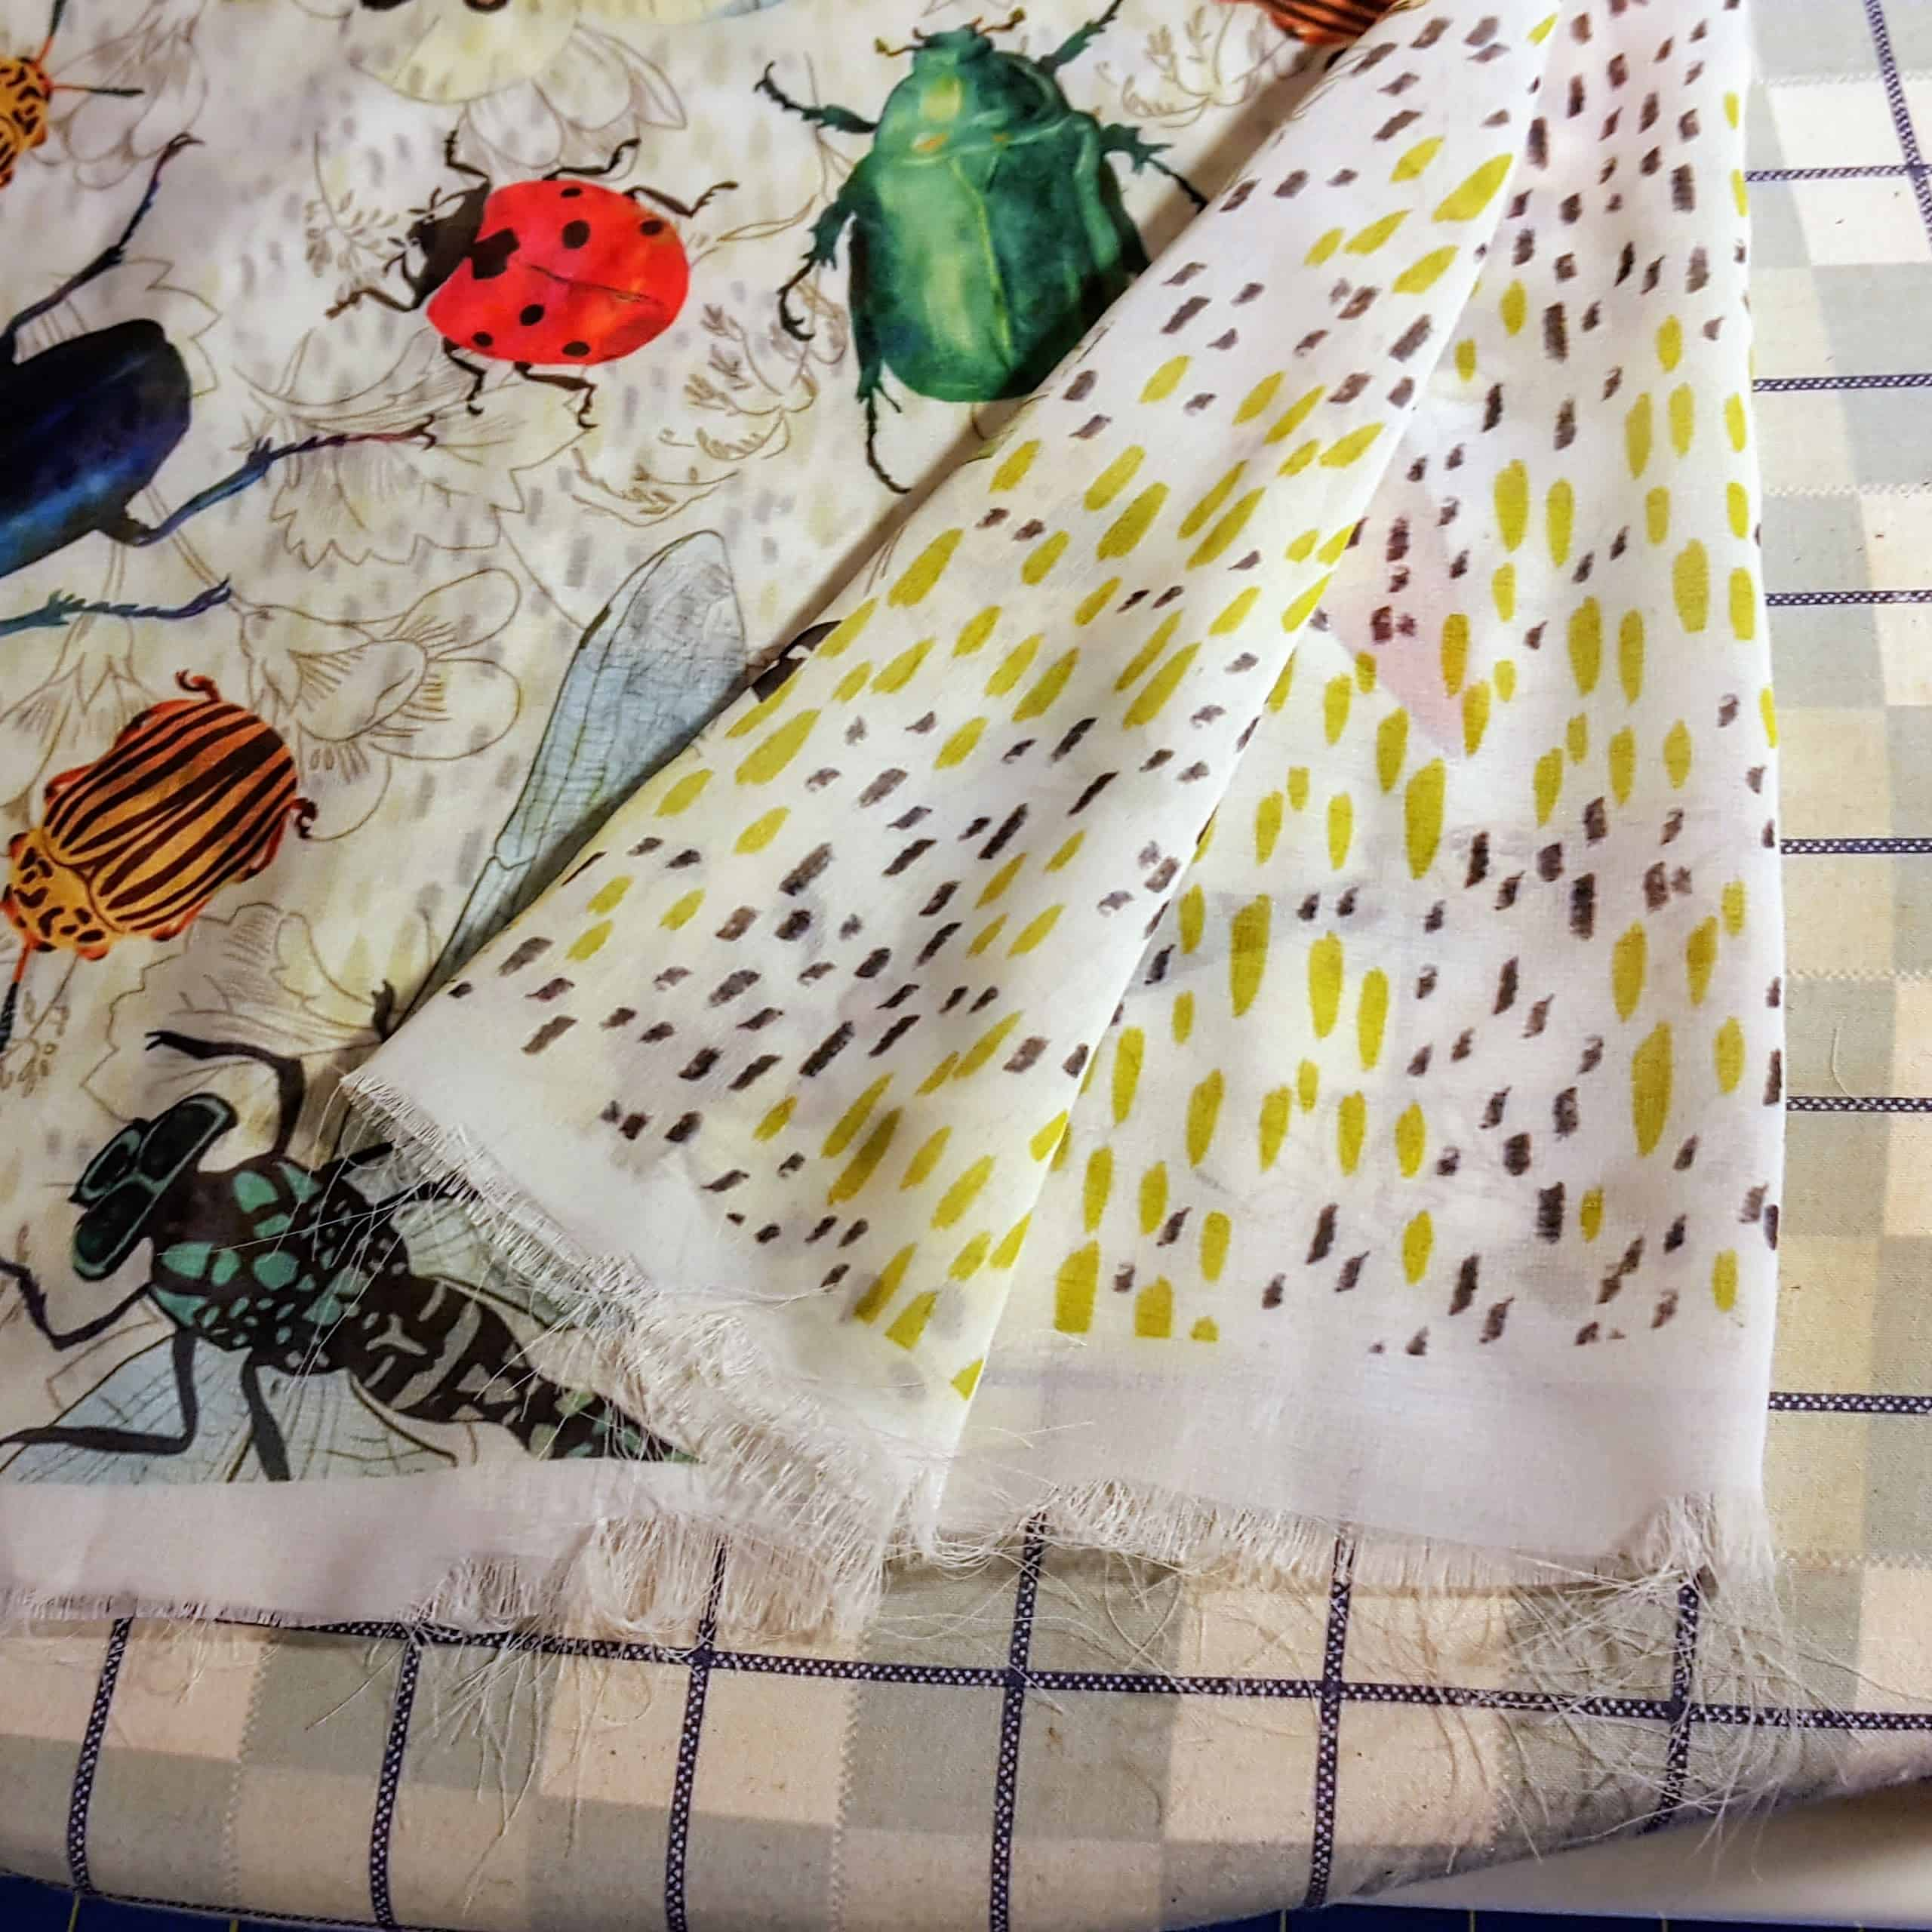 Once your chiffon is pre-washed, you're ready for sewing | Spoonflower Blog